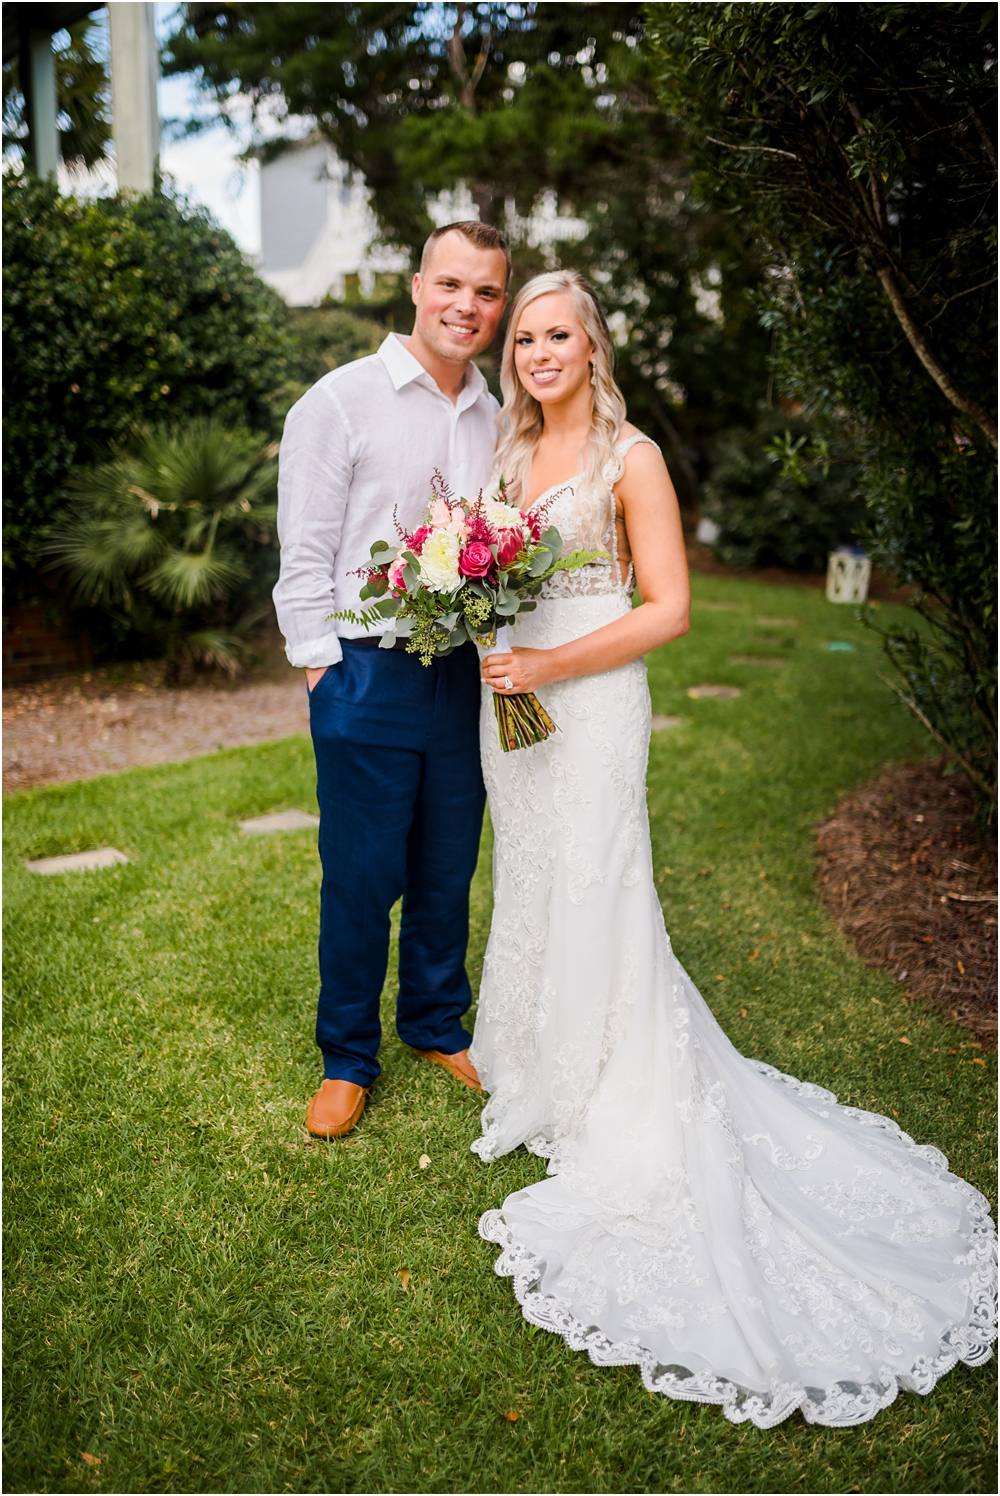 mcglothlin-wedding-kiersten-stevenson-photography-30a-panama-city-beach-dothan-tallahassee-(61-of-145).jpg